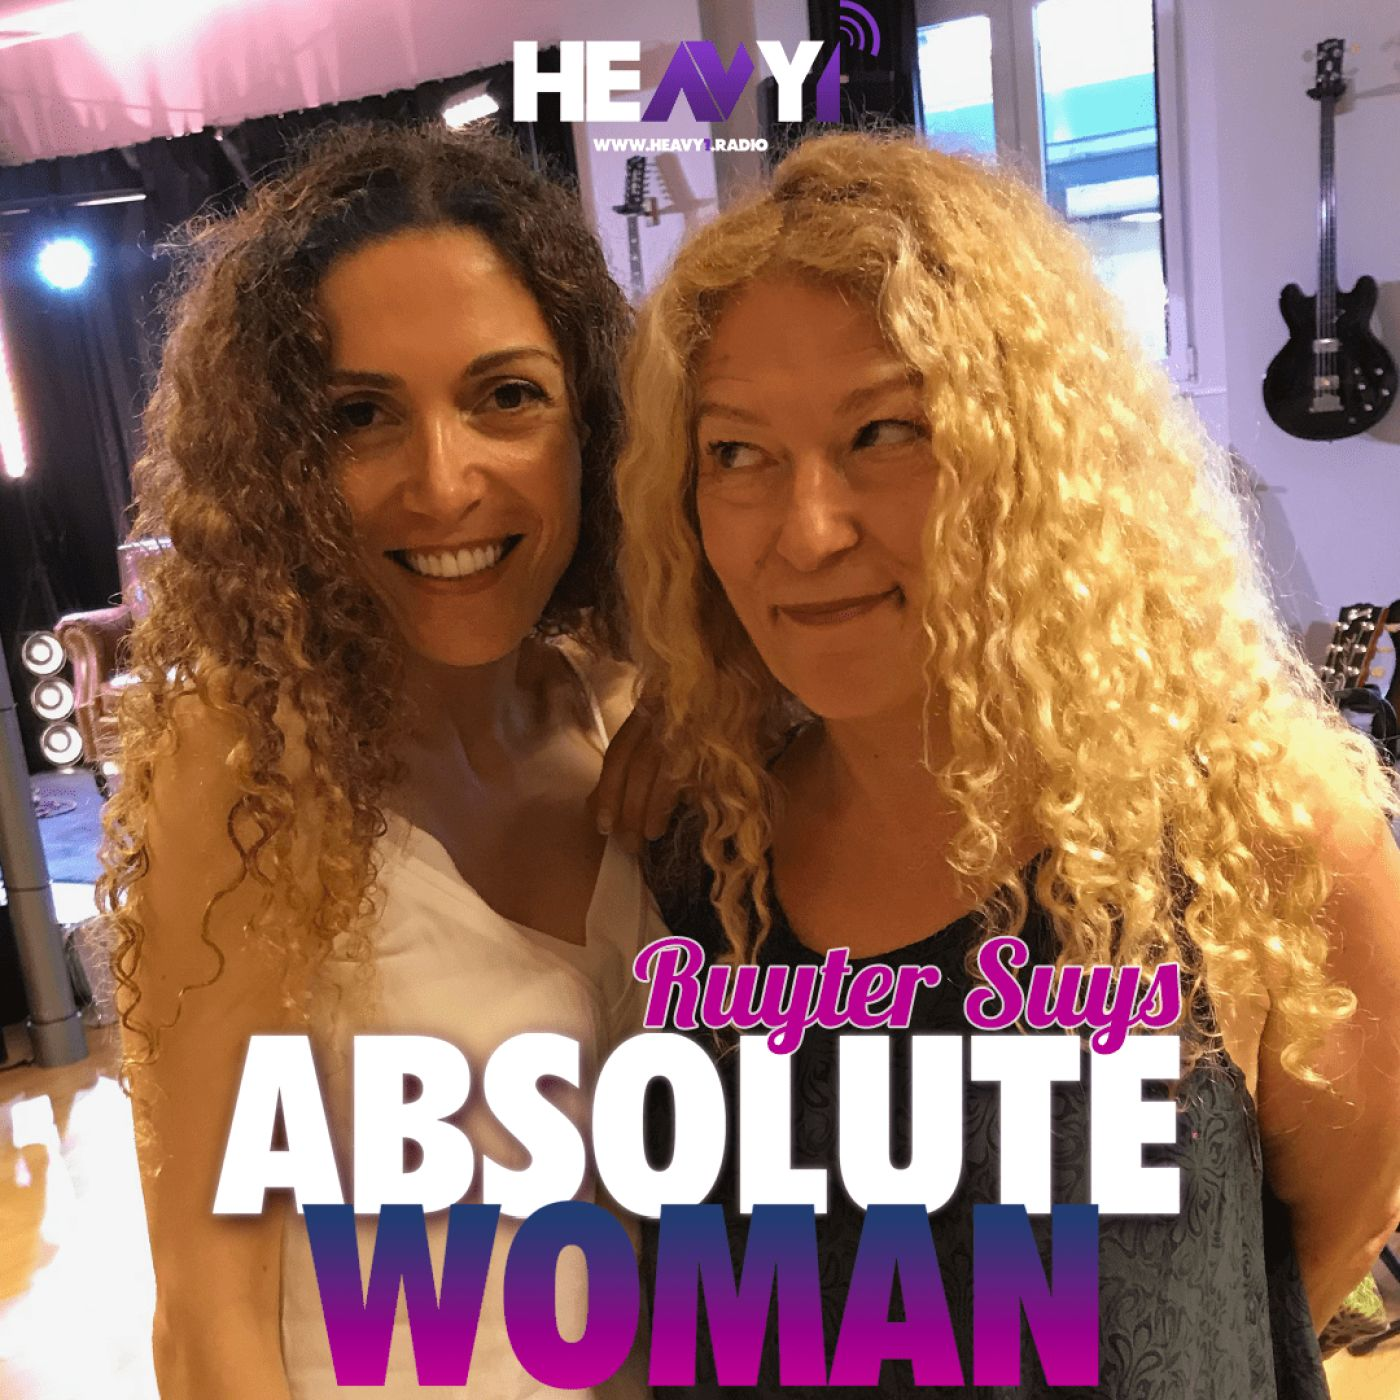 Absolute Woman : Ruyter Suys •Nashville Pussy (Ep.8 Saison 2)